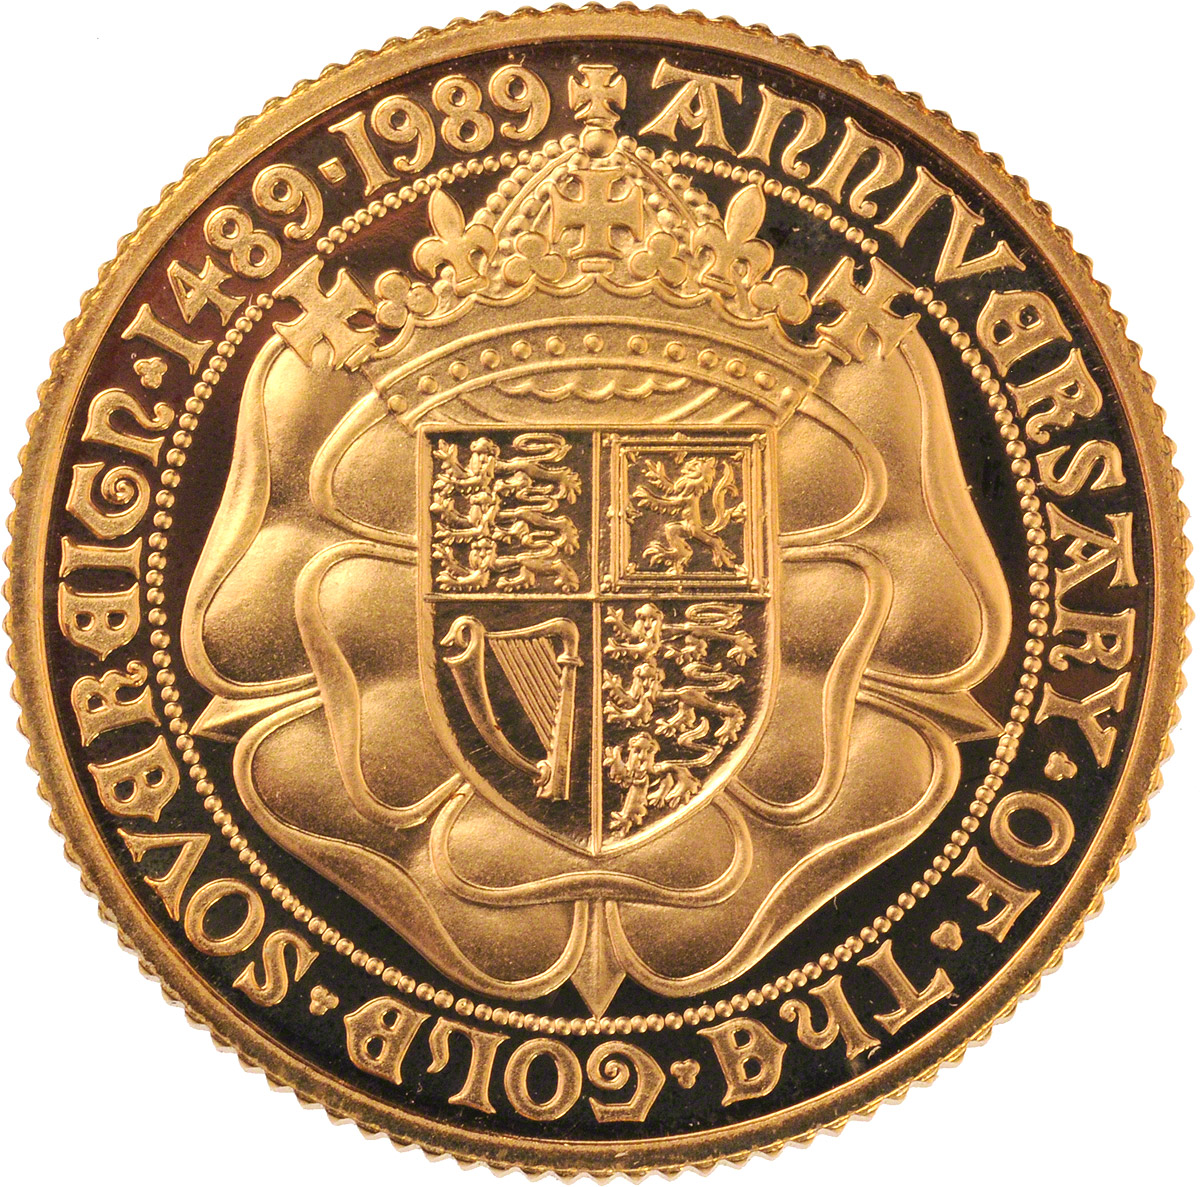 Reverse Face of a 1989-Gold-Sovereign